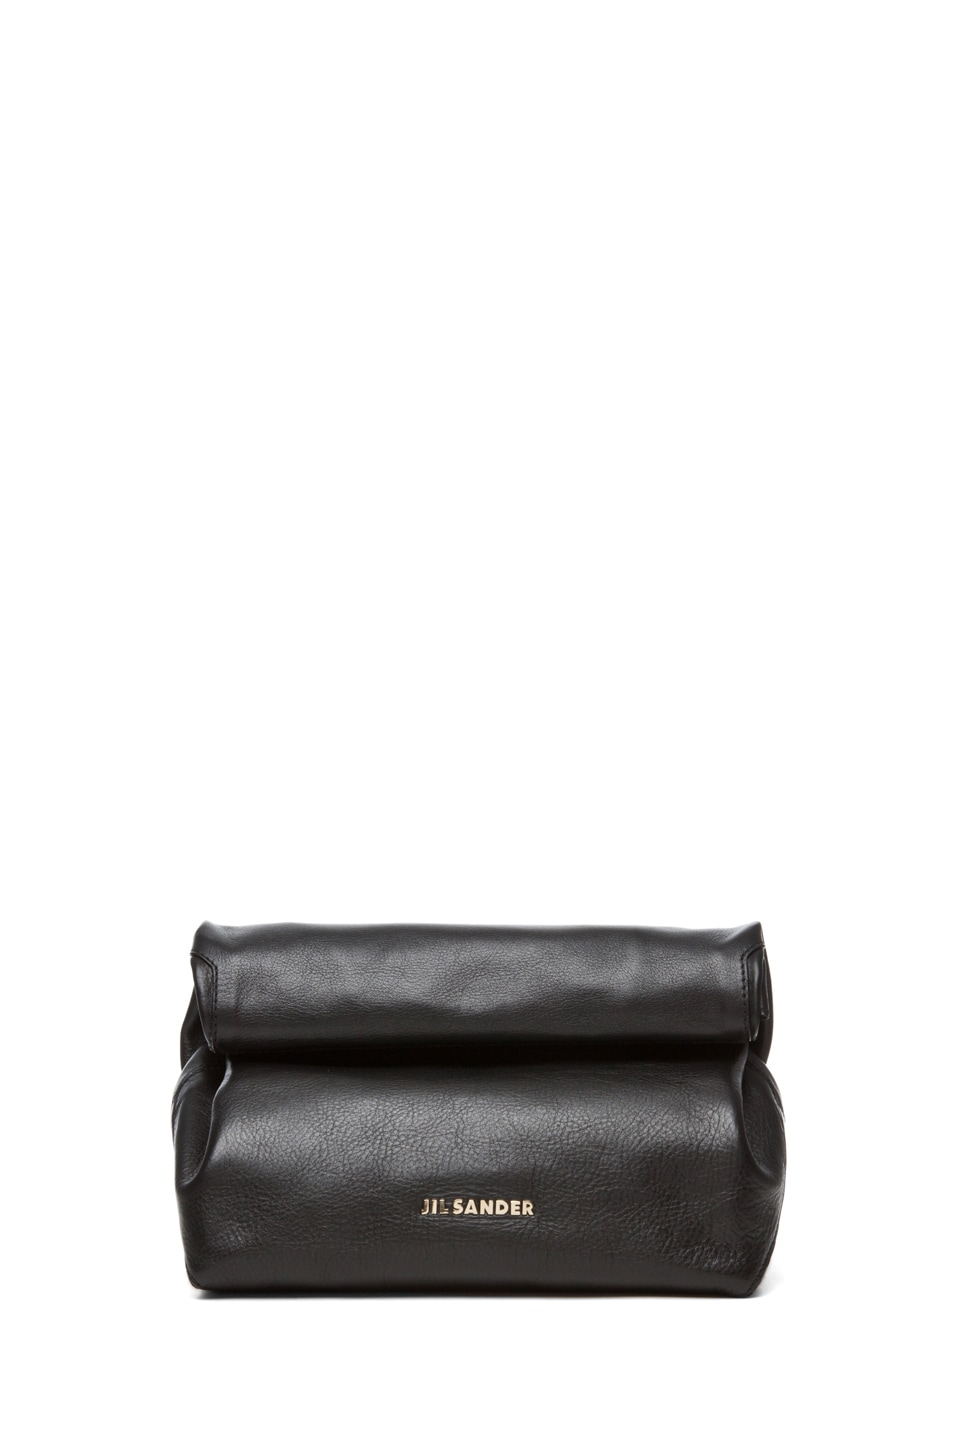 Image 1 of Jil Sander Milton Bag in Black